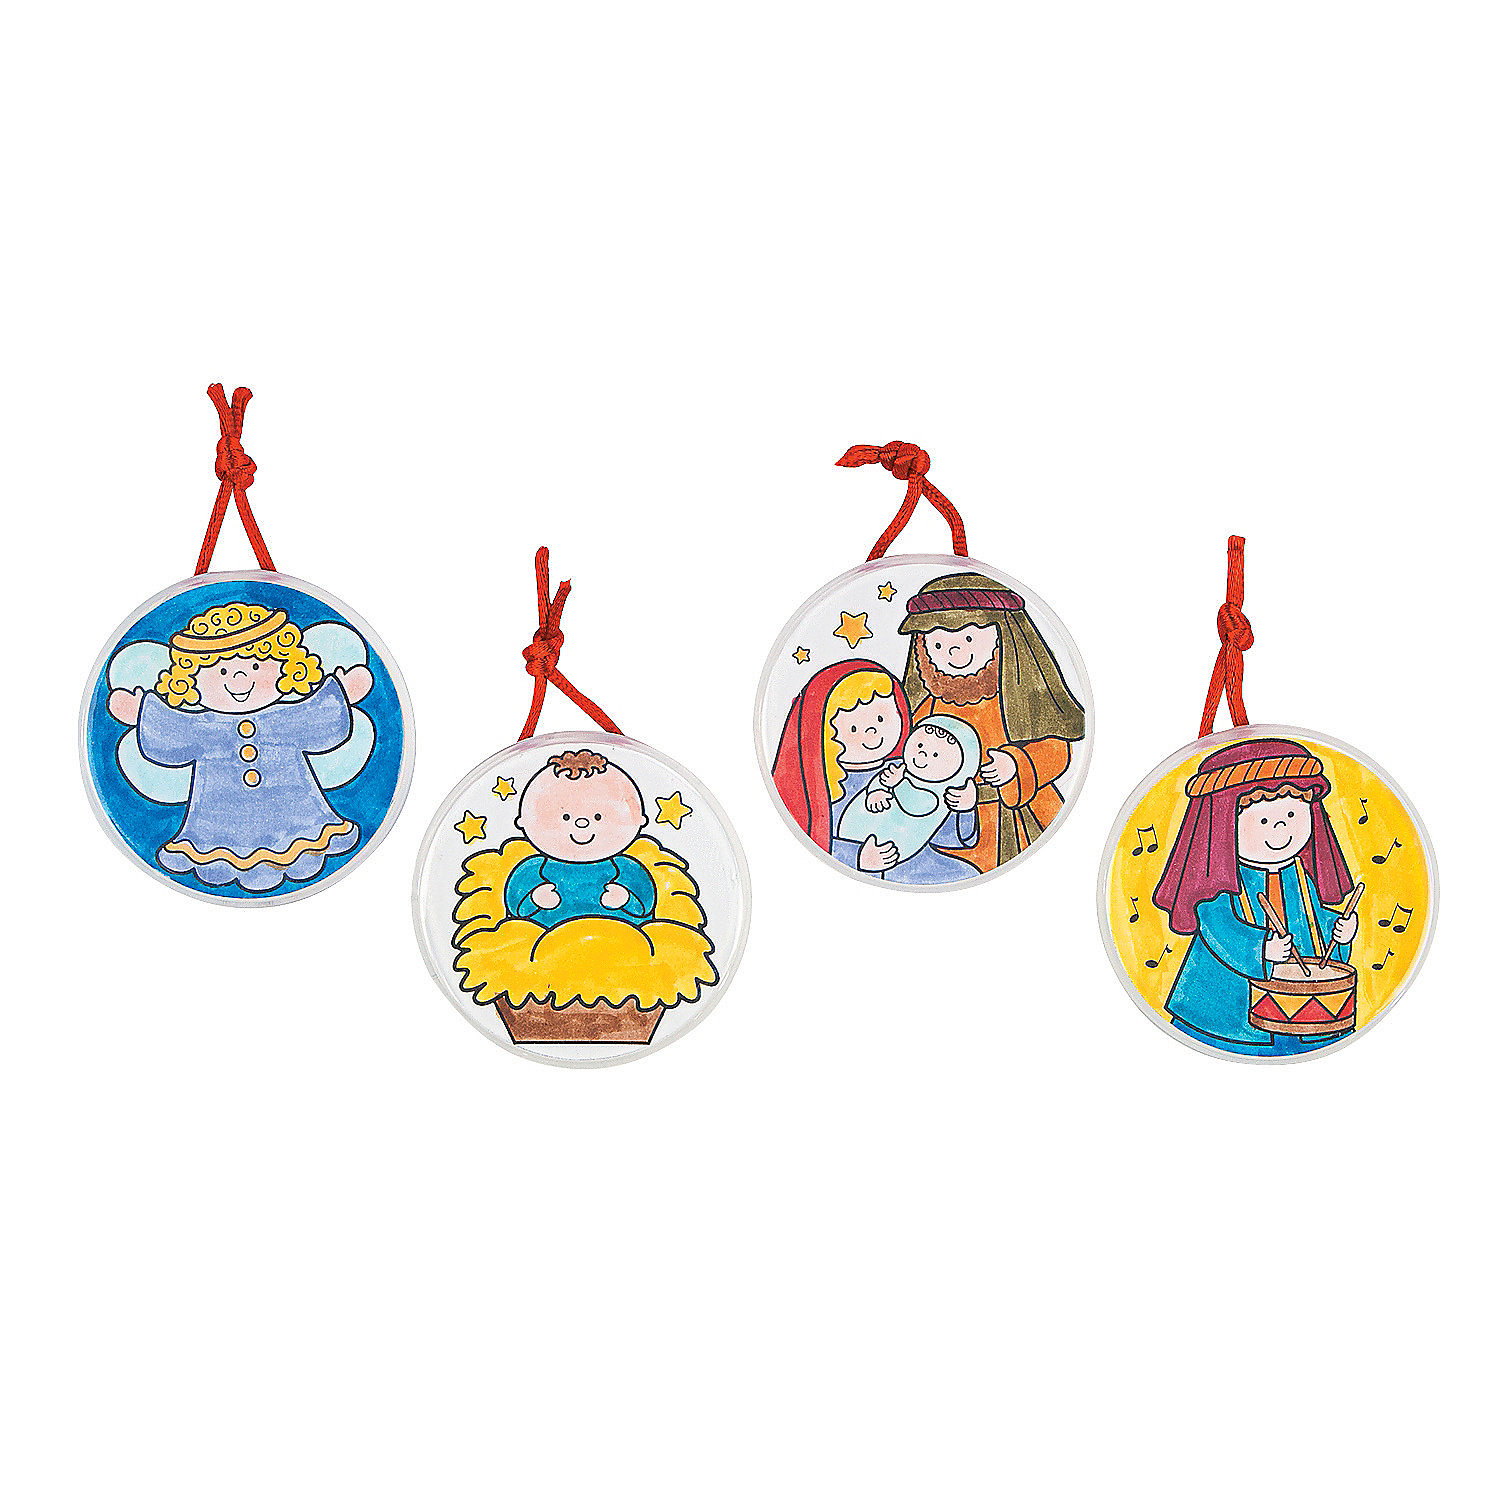 Christmas Decorations Religious: Color Your Own Religious Christmas Ornaments